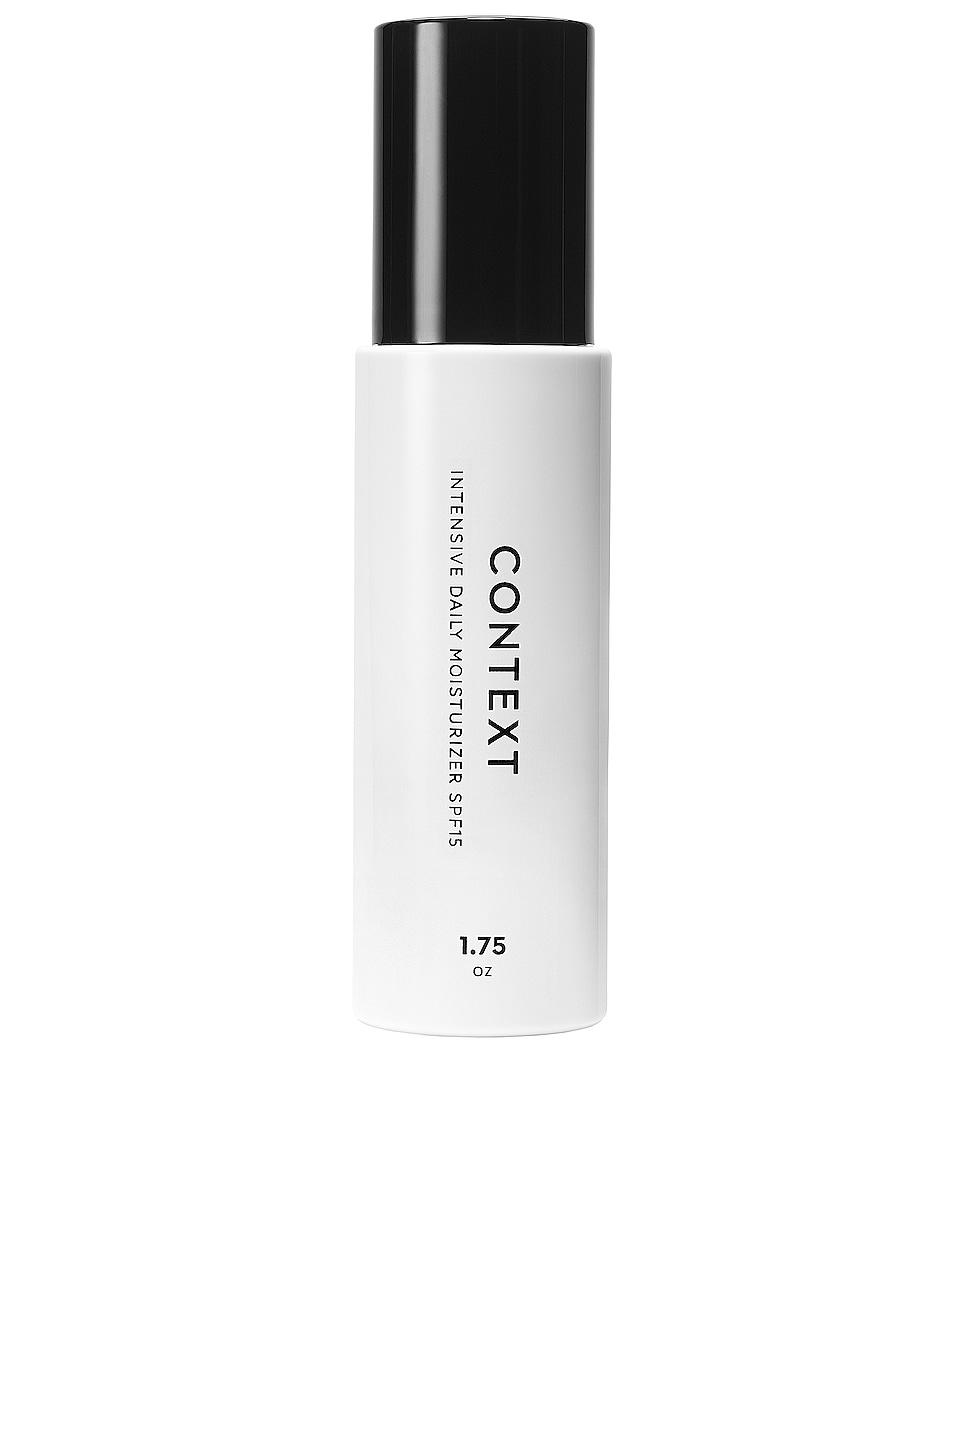 Context Intensive Daily Moisturizer SPF 15 in All